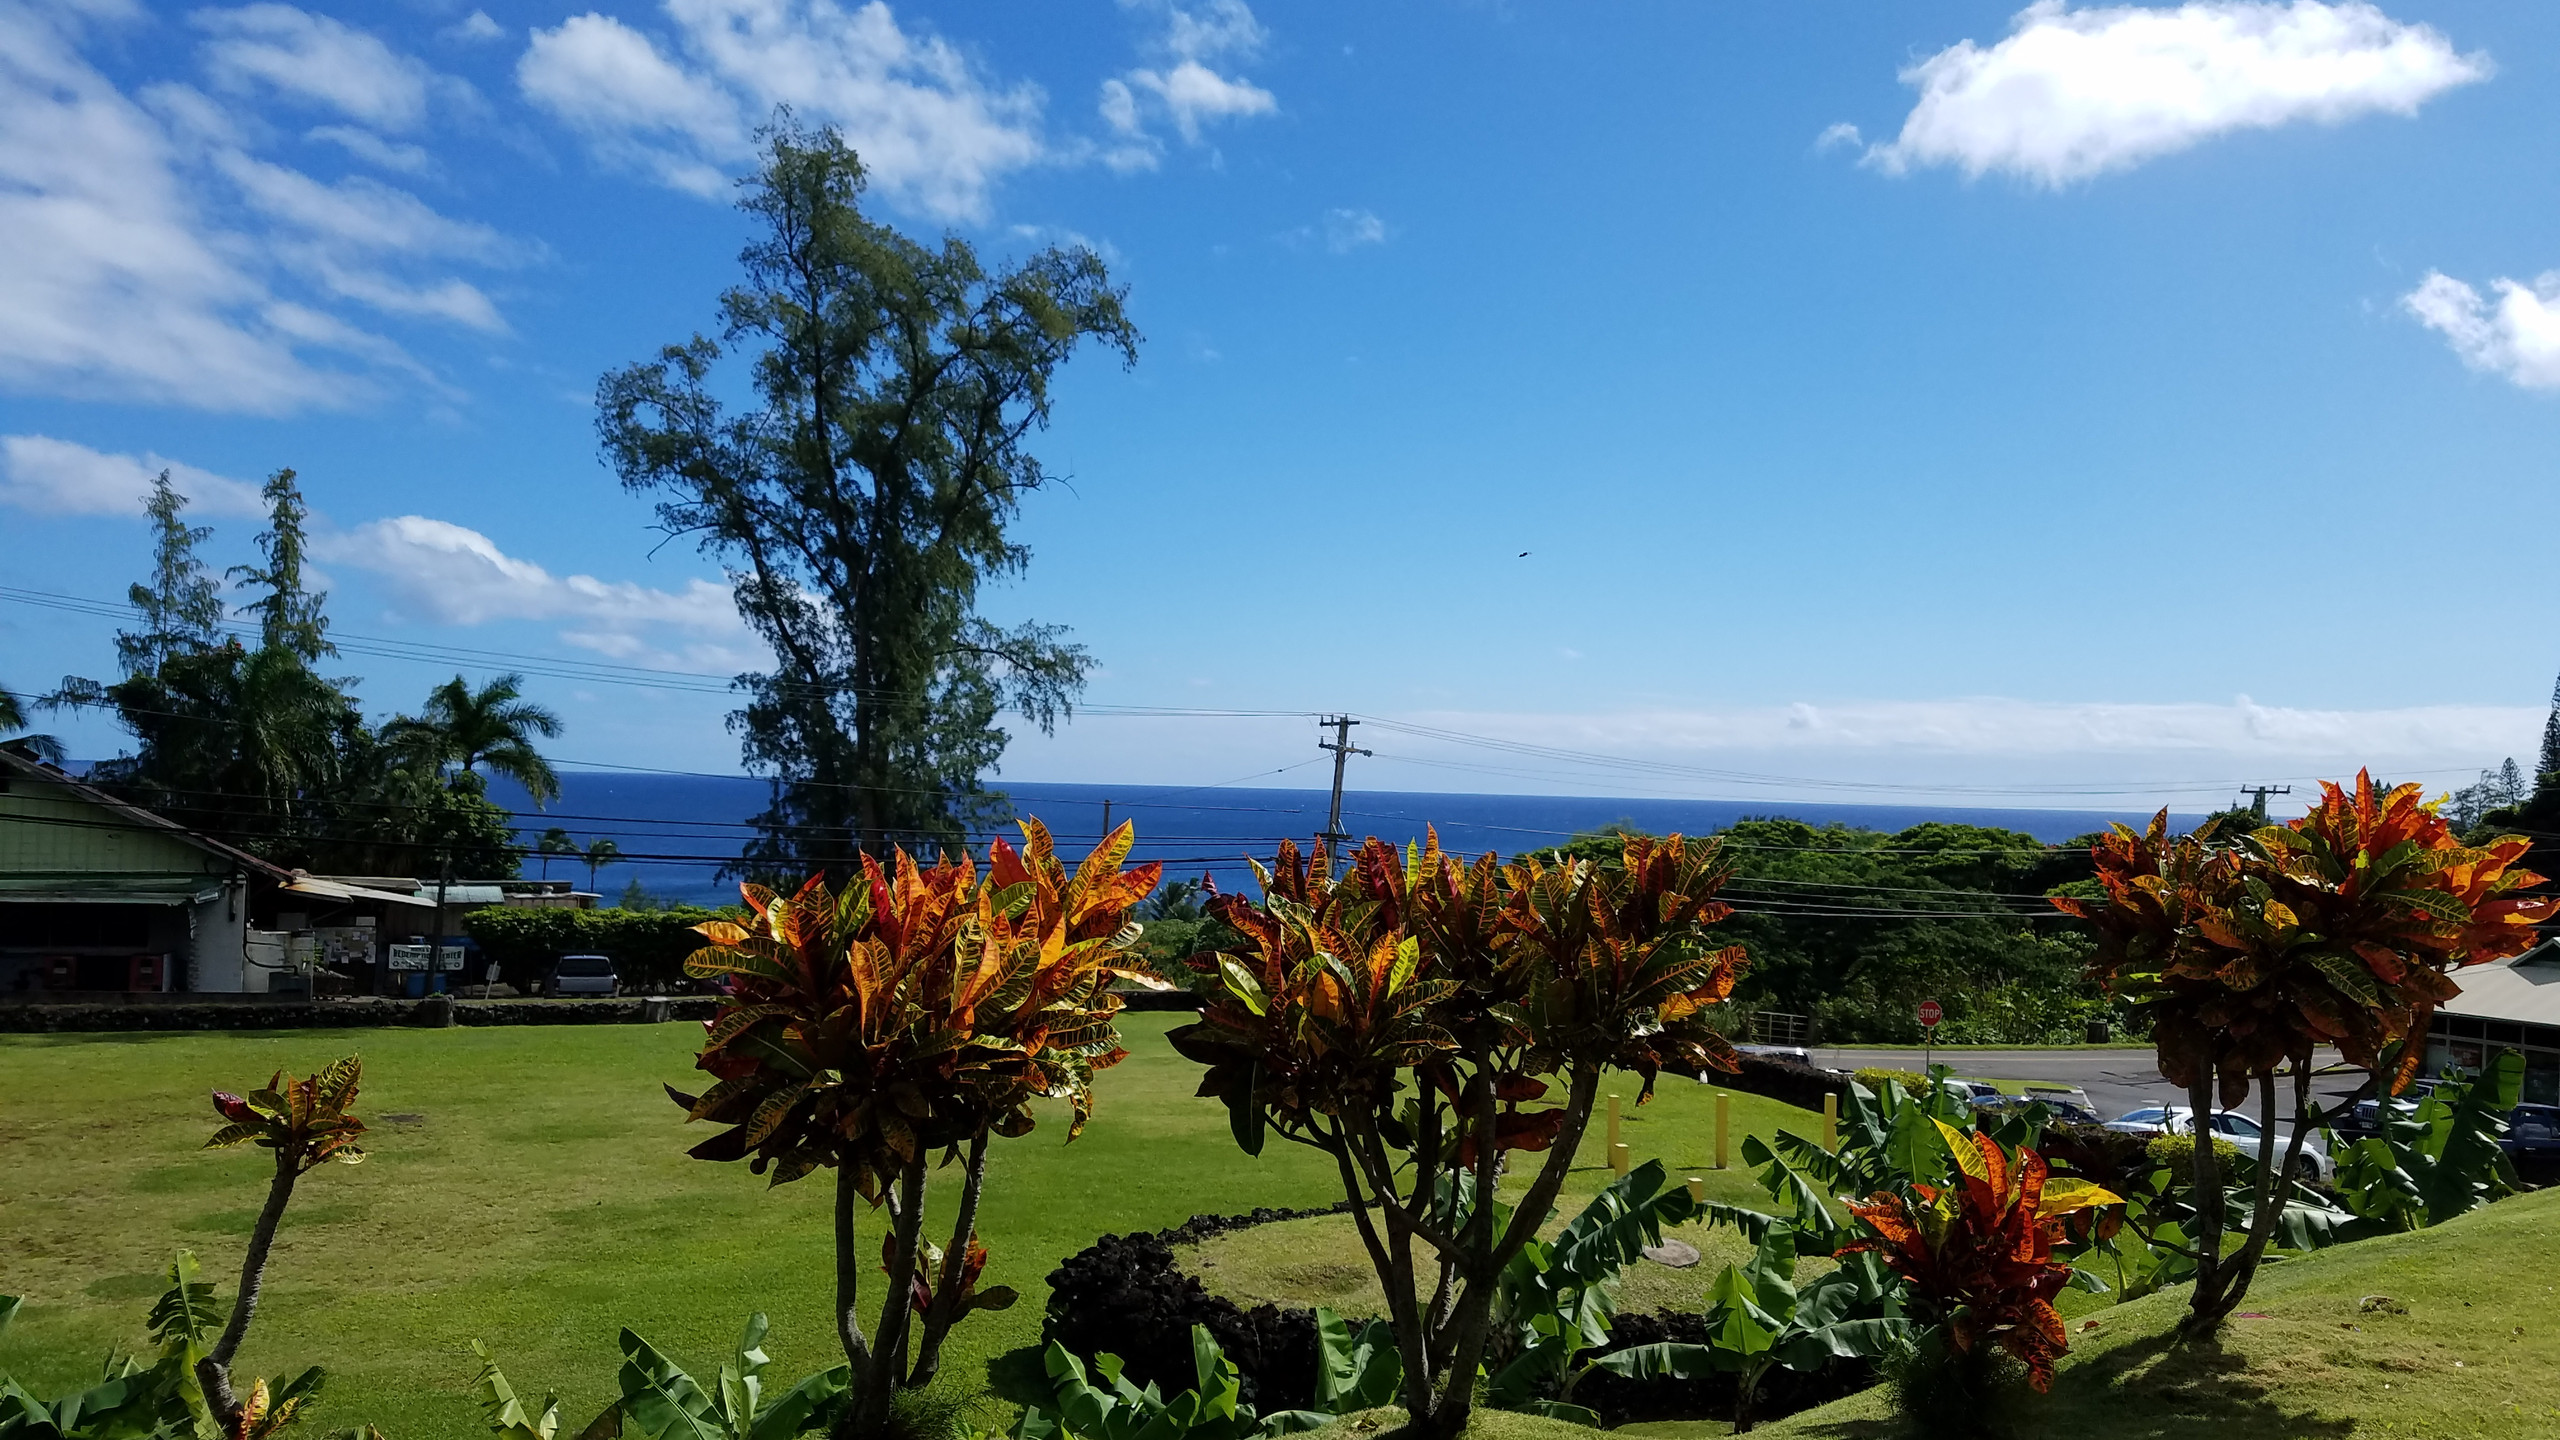 View from The Hana Ranch Restaurant